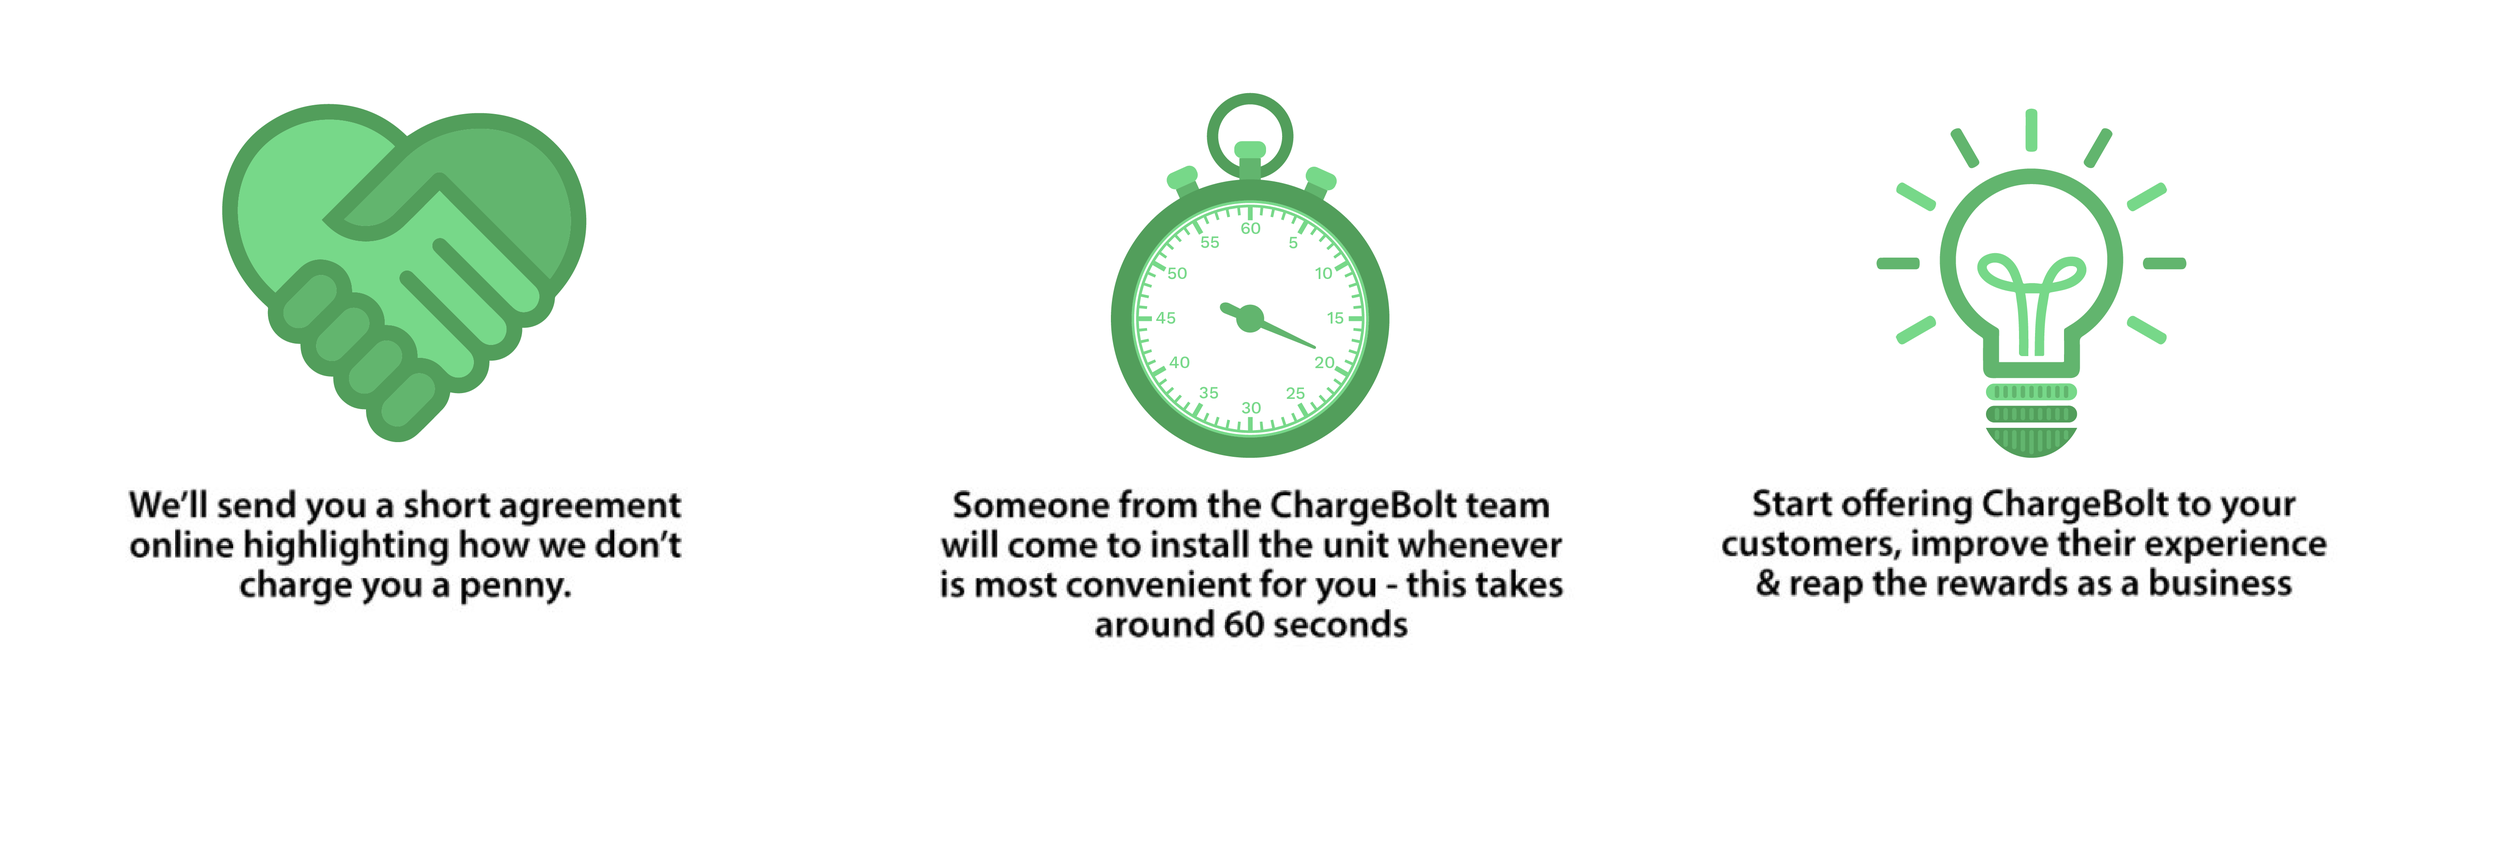 chargebolt for businesses.png